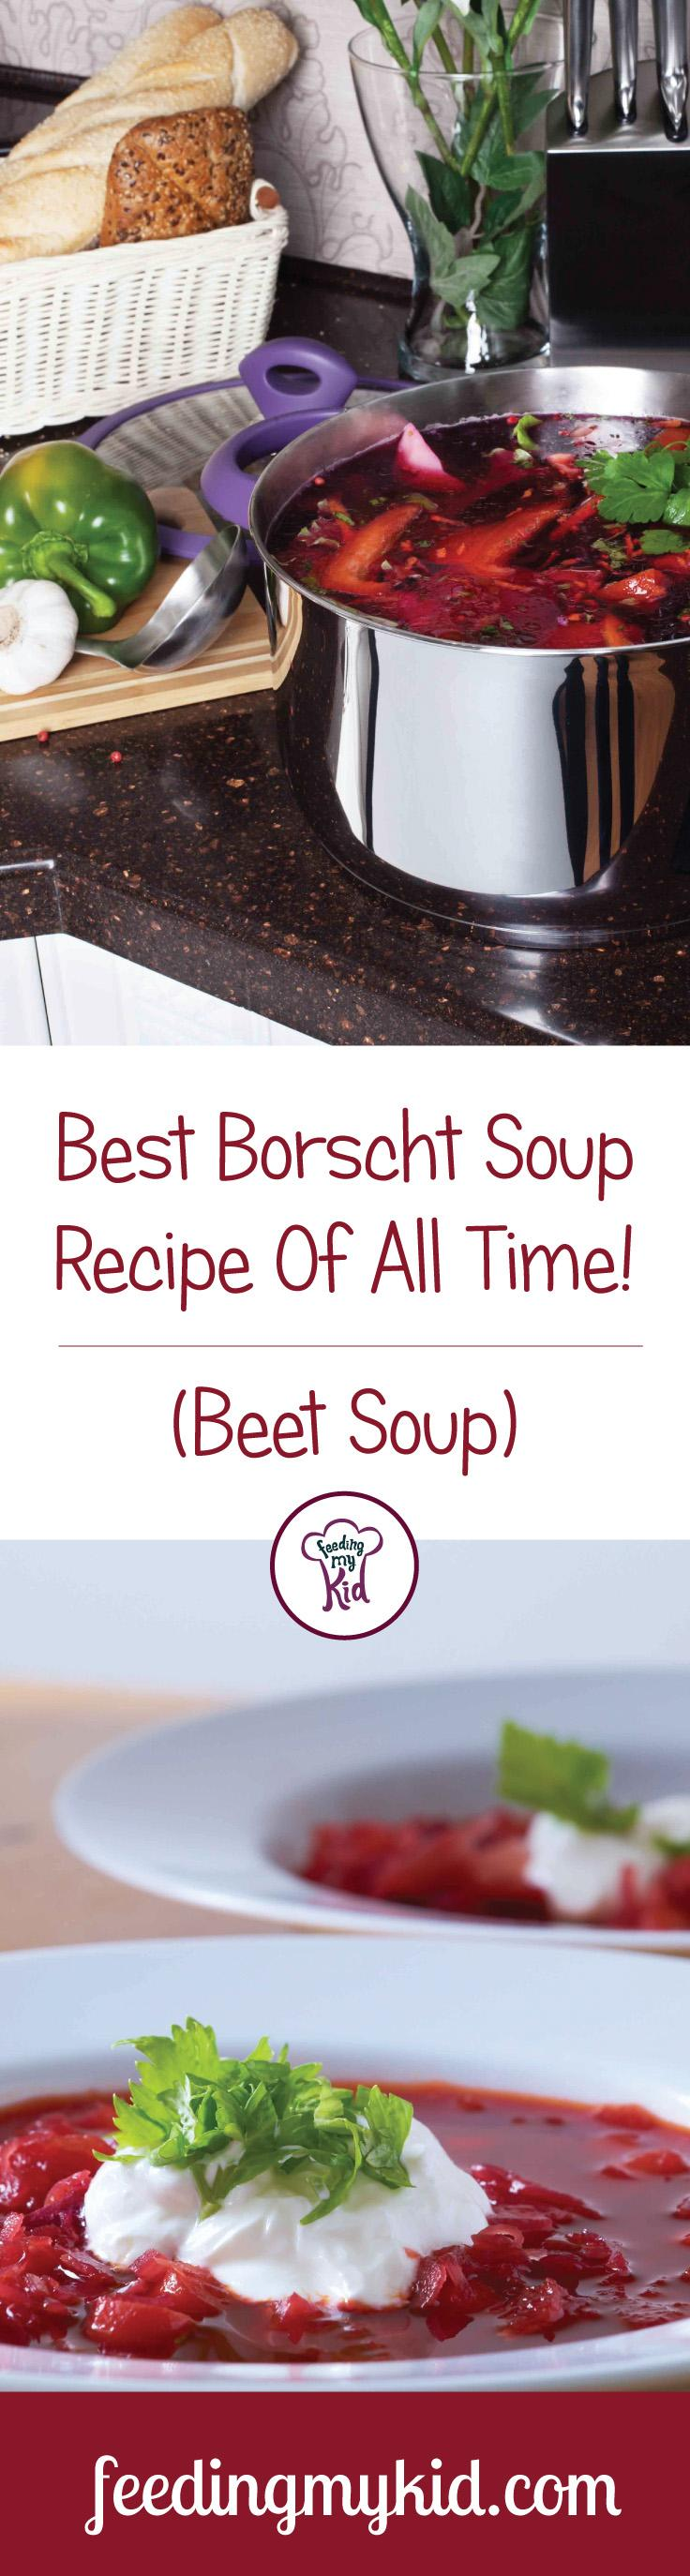 This is a must pin! This is one of my favorite soup recipes! This Borscht recipe can rival any restaurant's recipe by far! This soup can be eaten warm or cold, so it can be enjoyed on a hot summer day or a cold winter night. Give it a try! Feeding My Kid is filled with all the information you need, from healthy tips to nutritious recipes like this one! #Borschtsoup #recipes #tips #Borscht